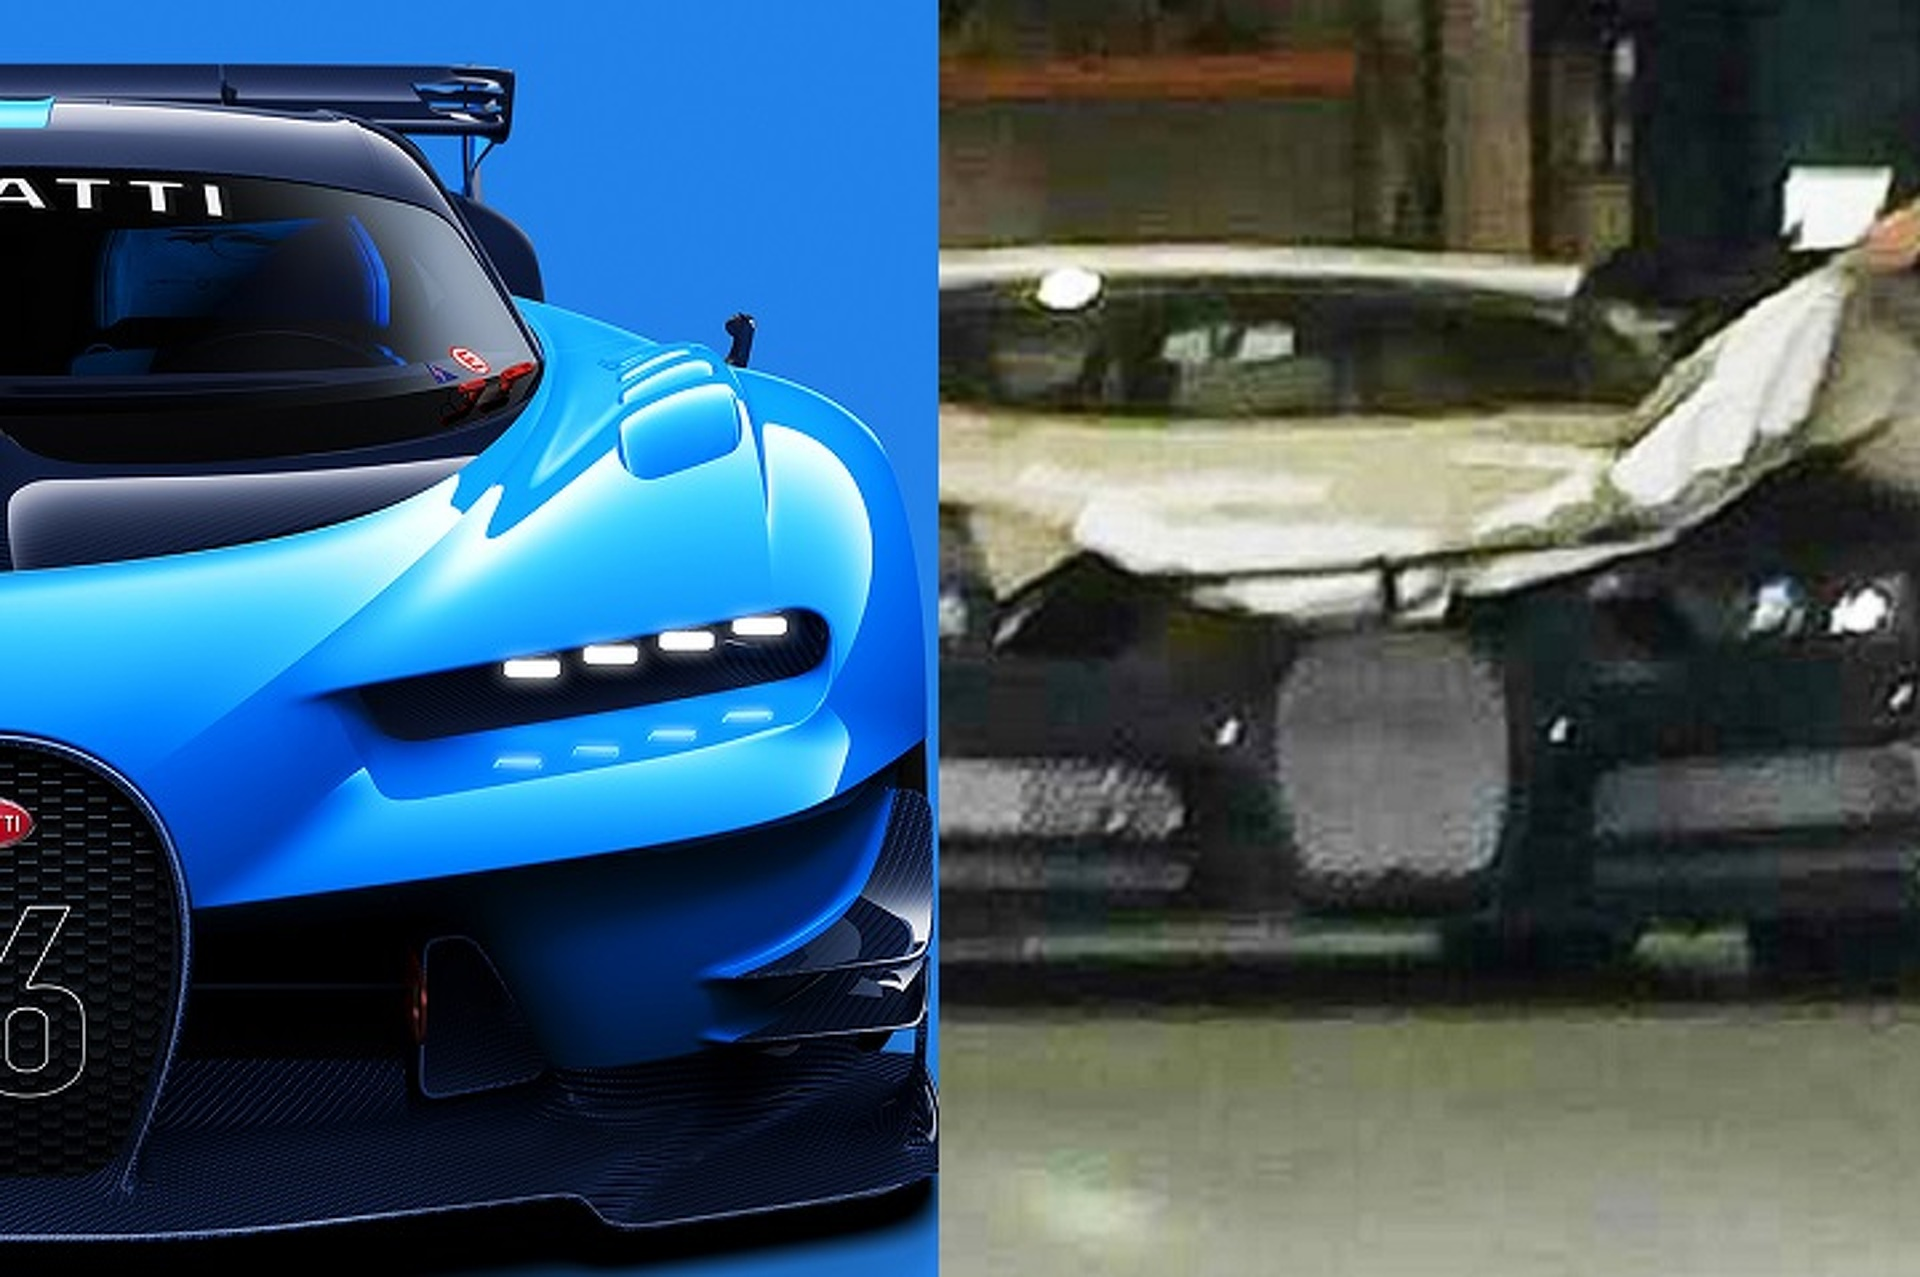 Is The Bugatti Vision GT Actually The Chiron In Race Disguise ... Chiron Bugatti Vision Gt on mitsubishi gt vision, subaru viziv gt vision, renault alpine gt vision, bmw gt vision,